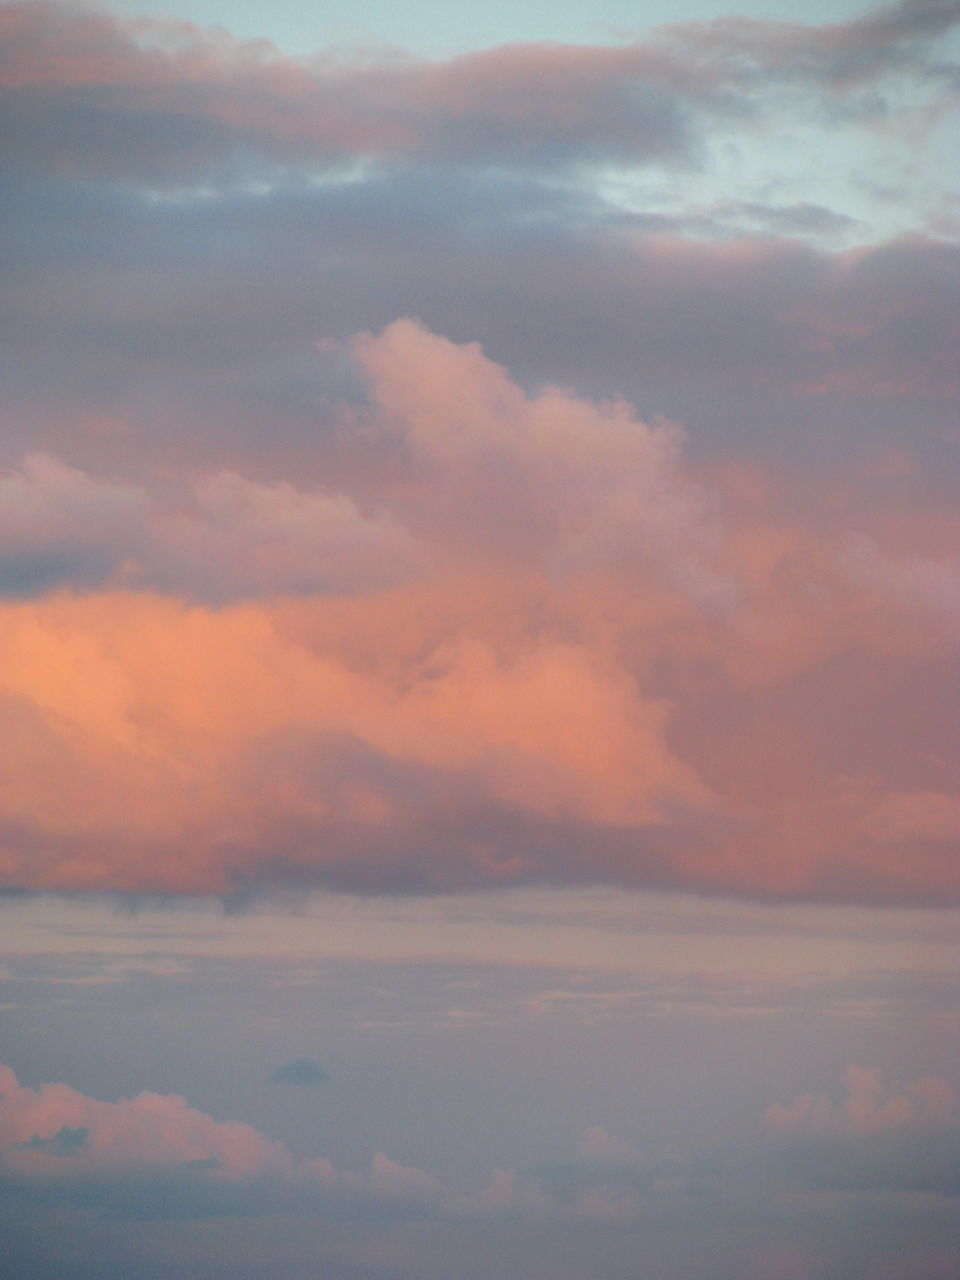 cloud - sky, sky, beauty in nature, nature, tranquility, scenics, cloudscape, atmospheric mood, sky only, tranquil scene, dramatic sky, idyllic, backgrounds, low angle view, outdoors, no people, sunset, full frame, day